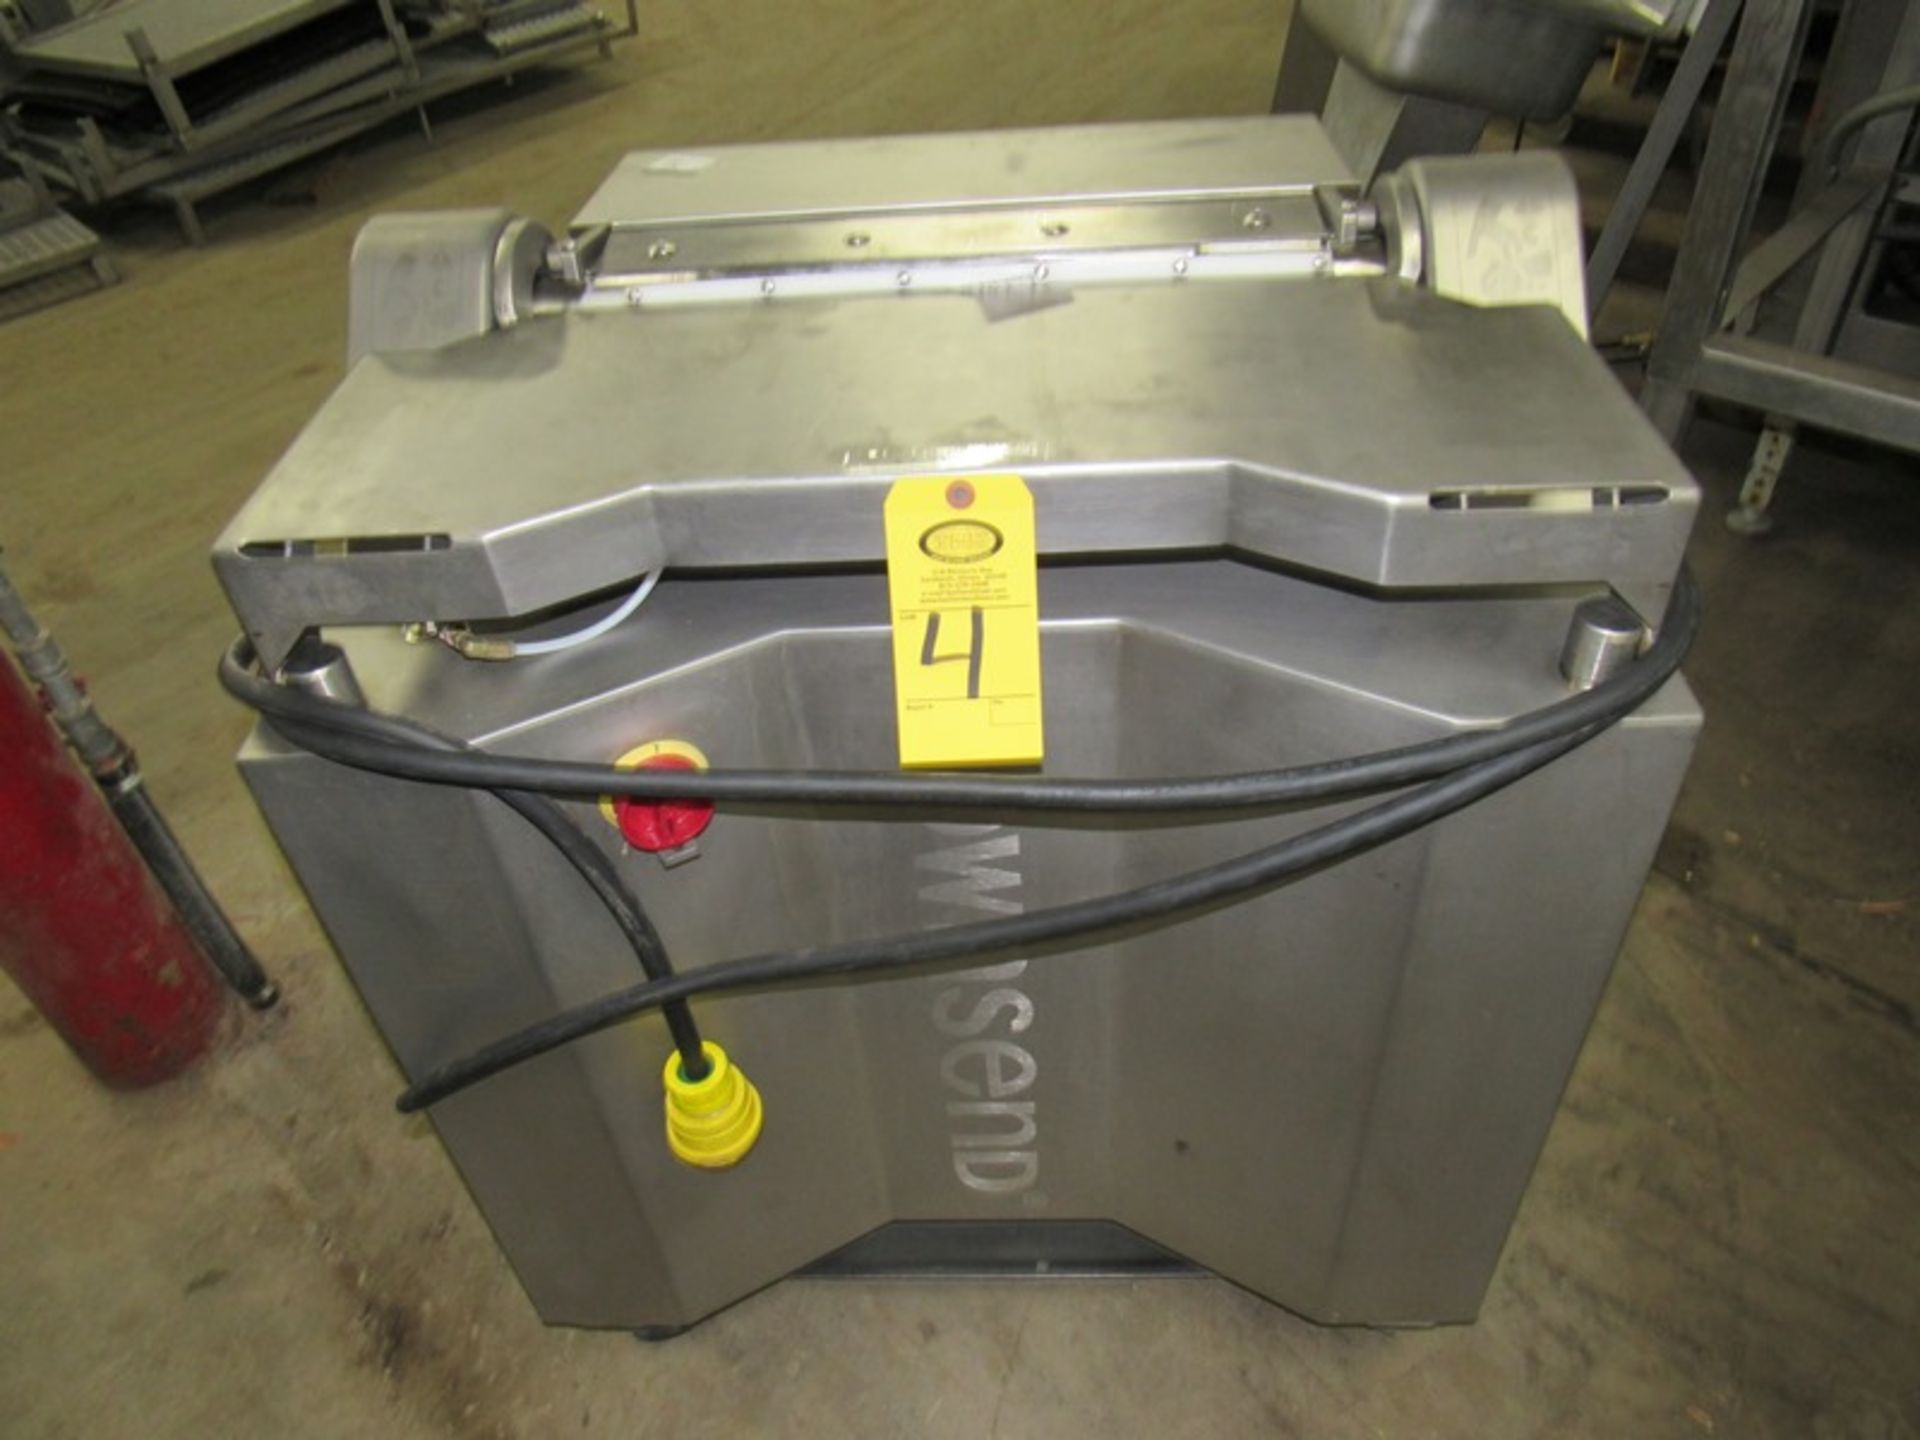 Lot 4 - Townsend Mdl. 7600 Membrane Skinner, w/air assist, 220 volt, 3 phase;*** All Funds Must Be